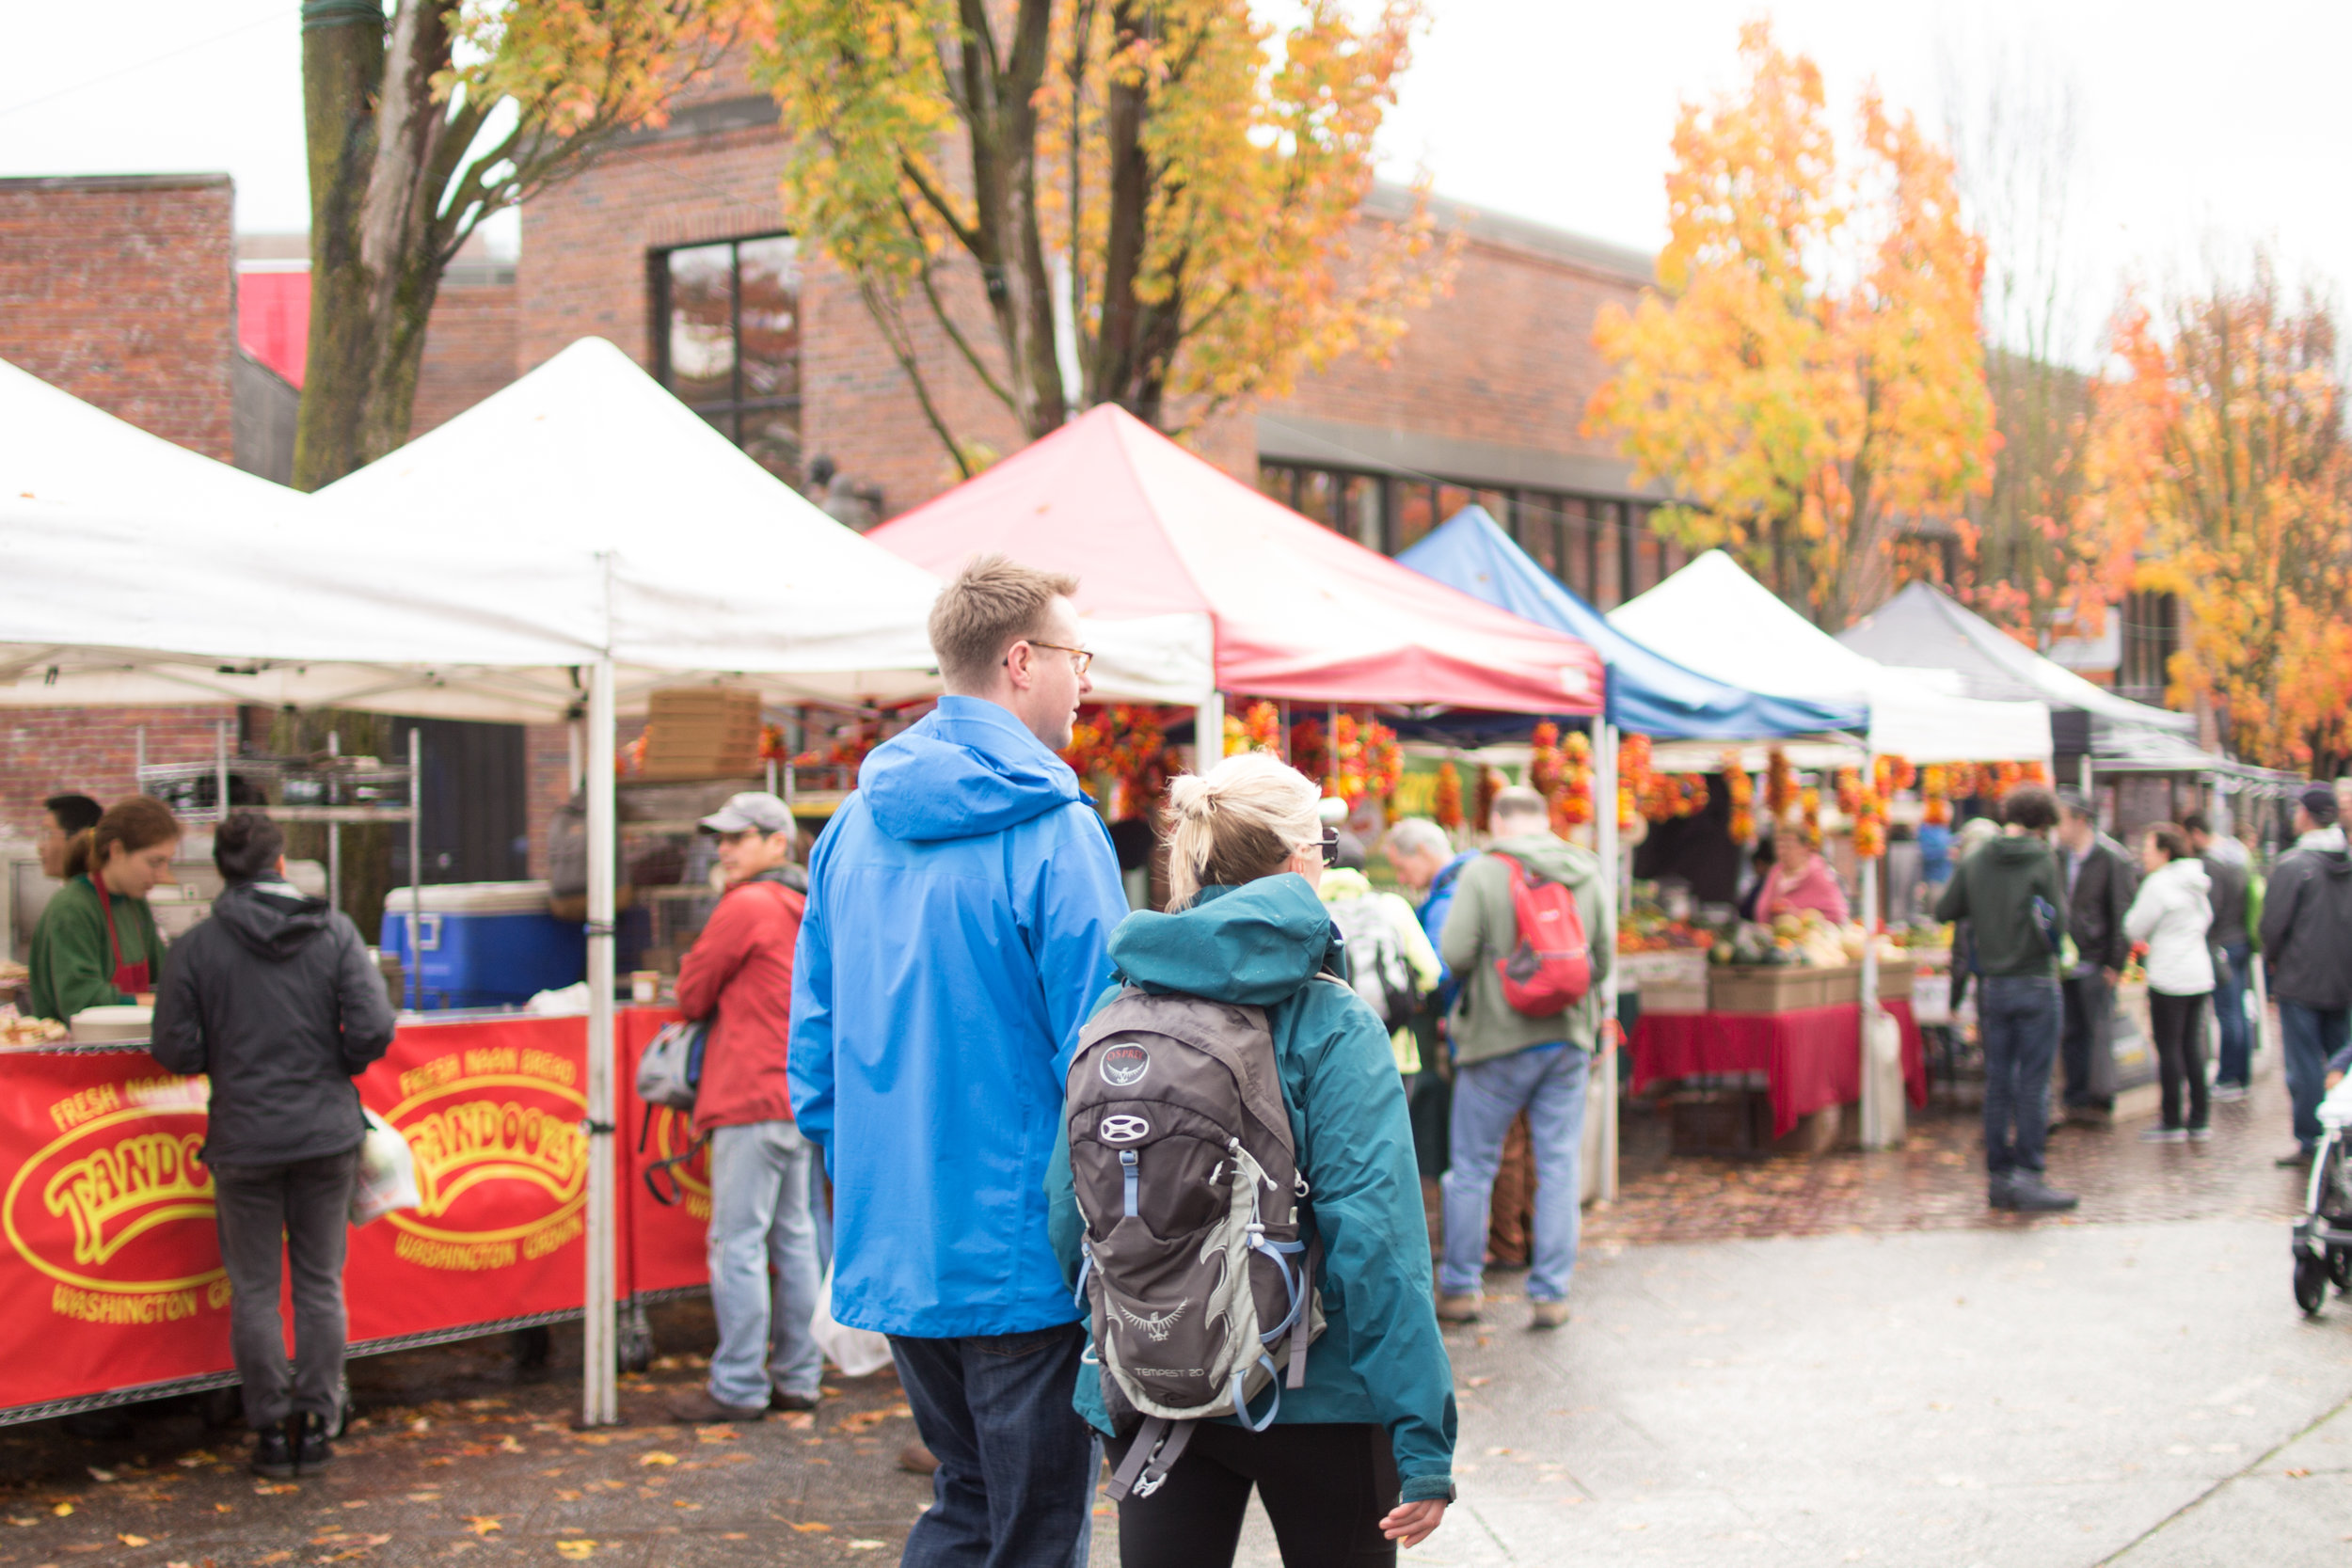 Walk-a-Mile Immersion at the market